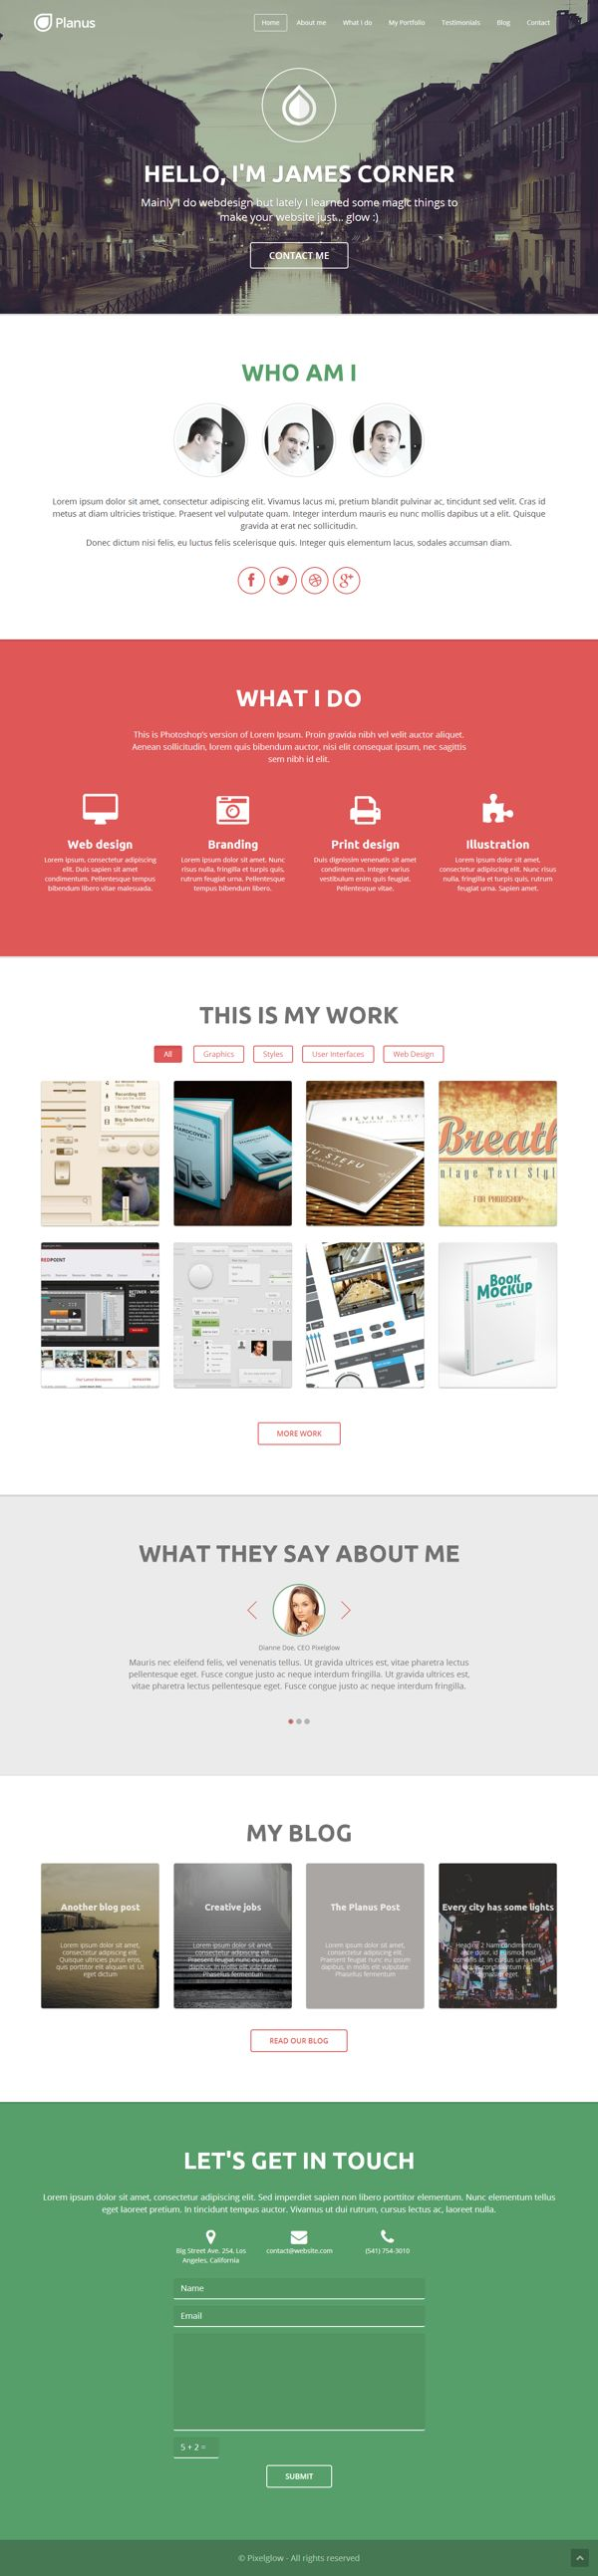 PlanusWP - One PAge WordPress Theme #web #design